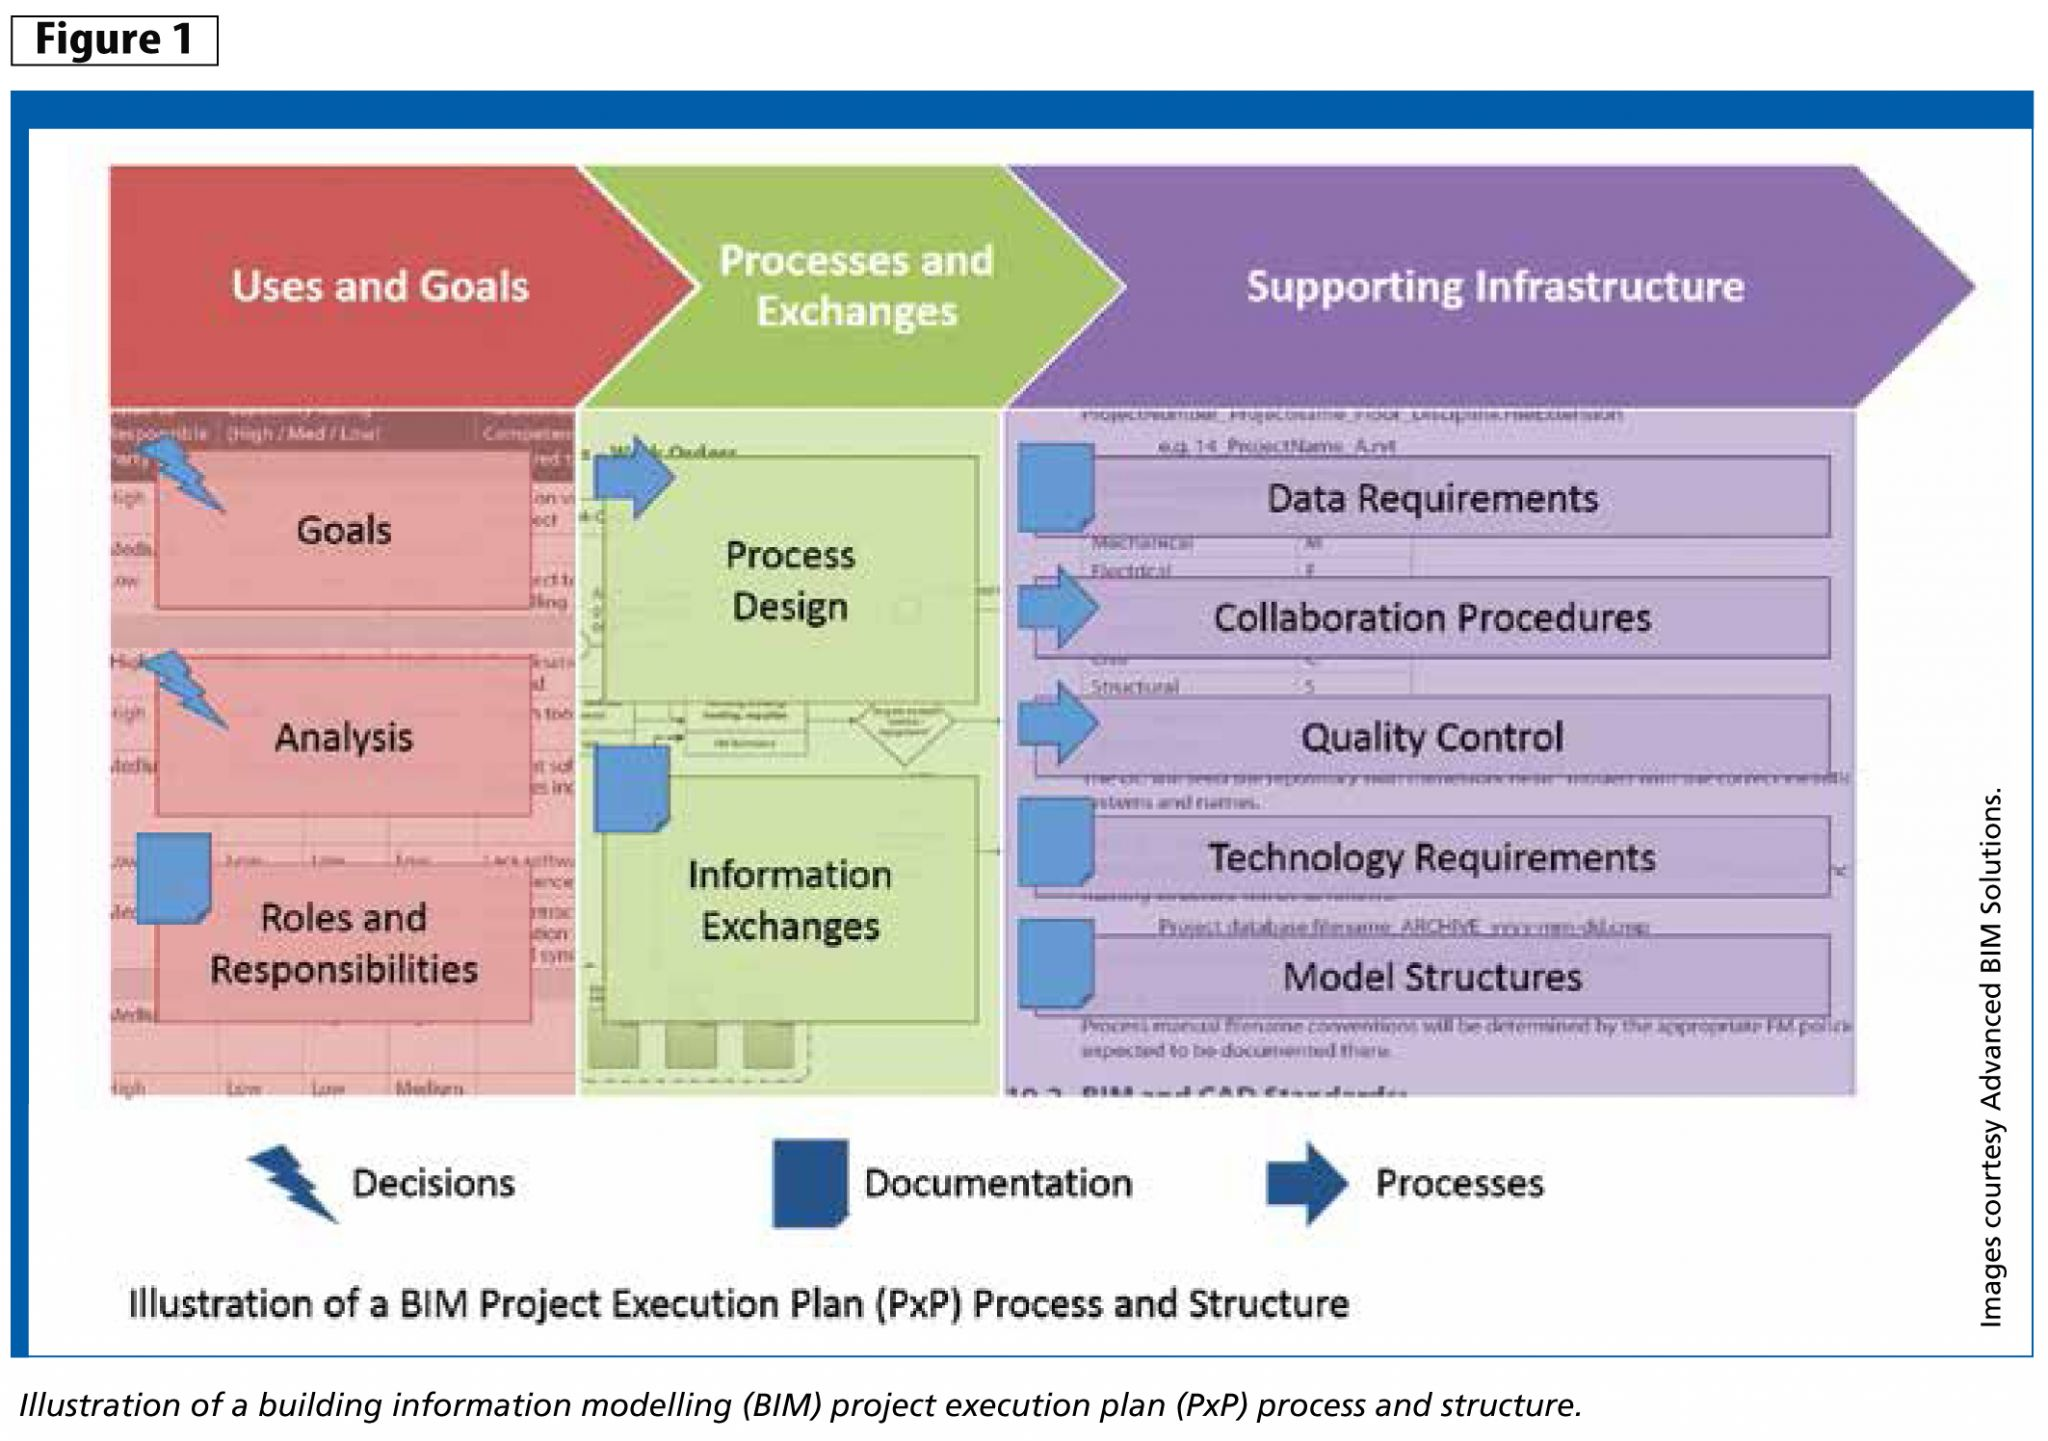 BIM PxP: Knowing the execution plan essentials | Construction Canada